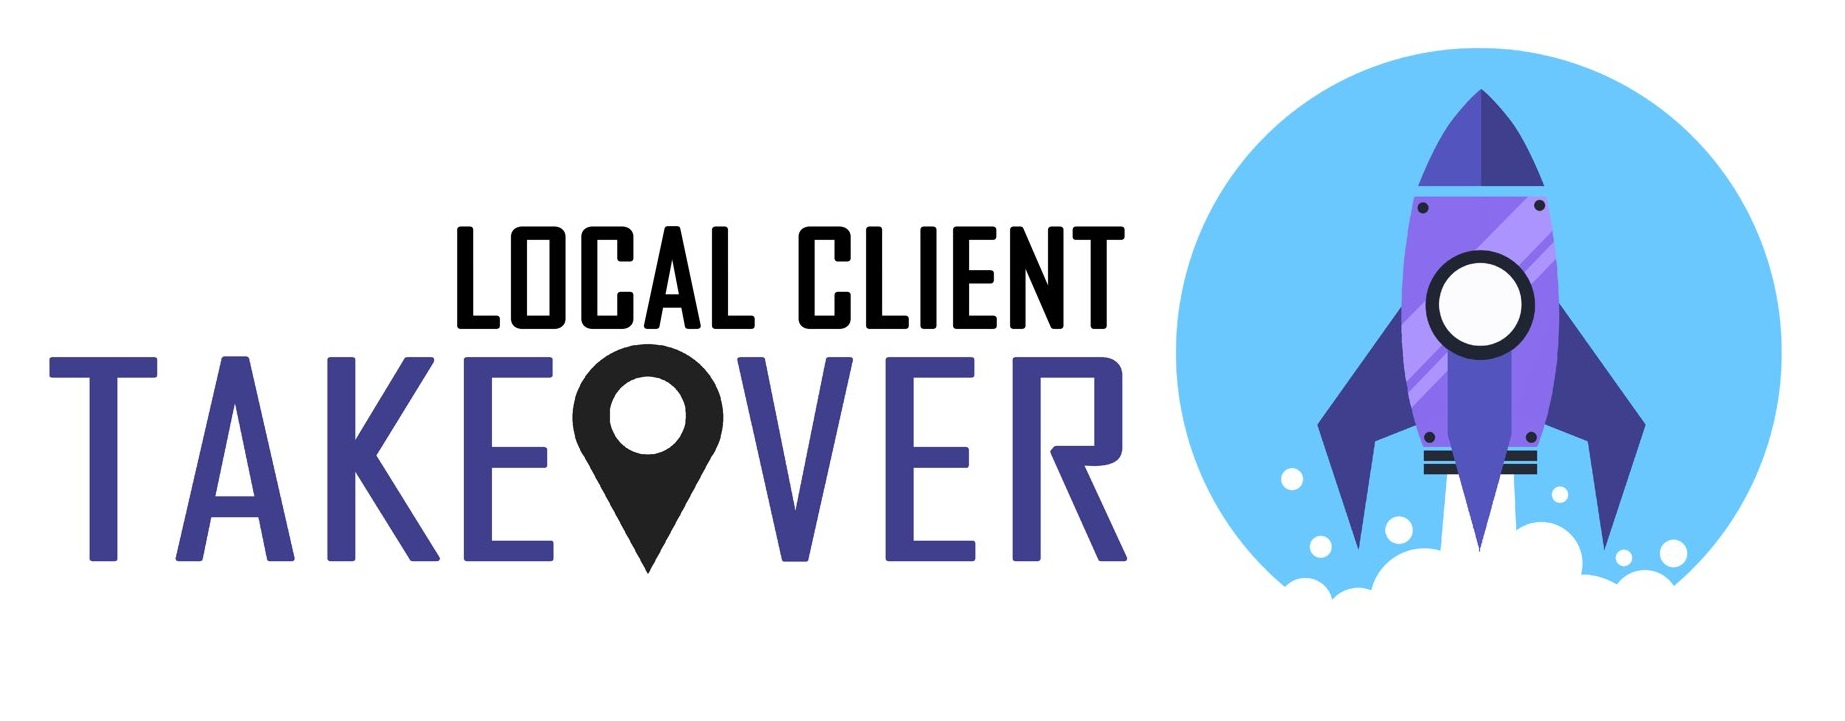 Local Client Takeover